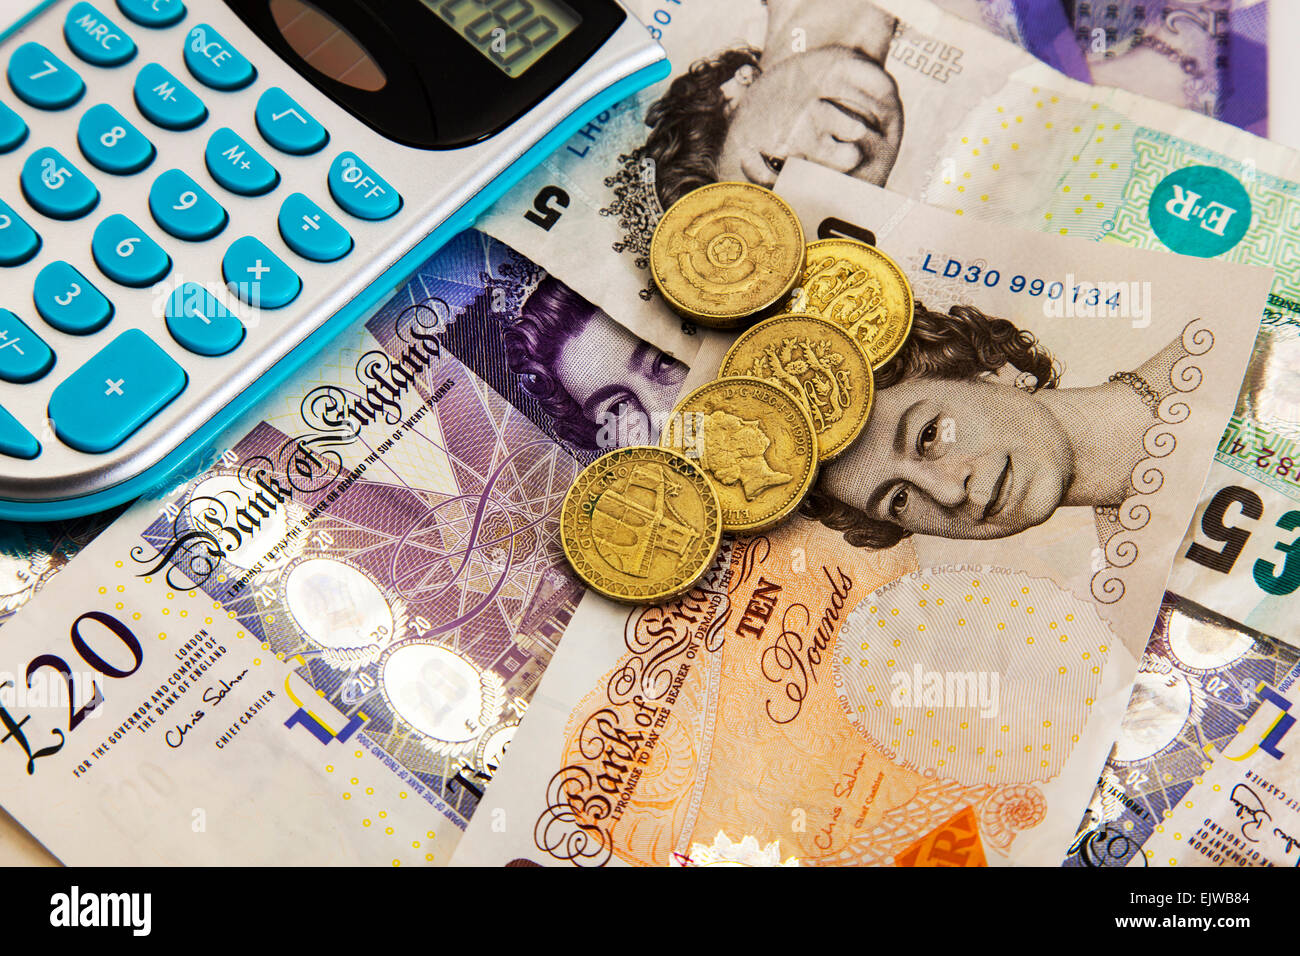 calculator money uk banknotes cash funds money debt bankrupt bankruptcy isolated cutout cut out white background - Stock Image